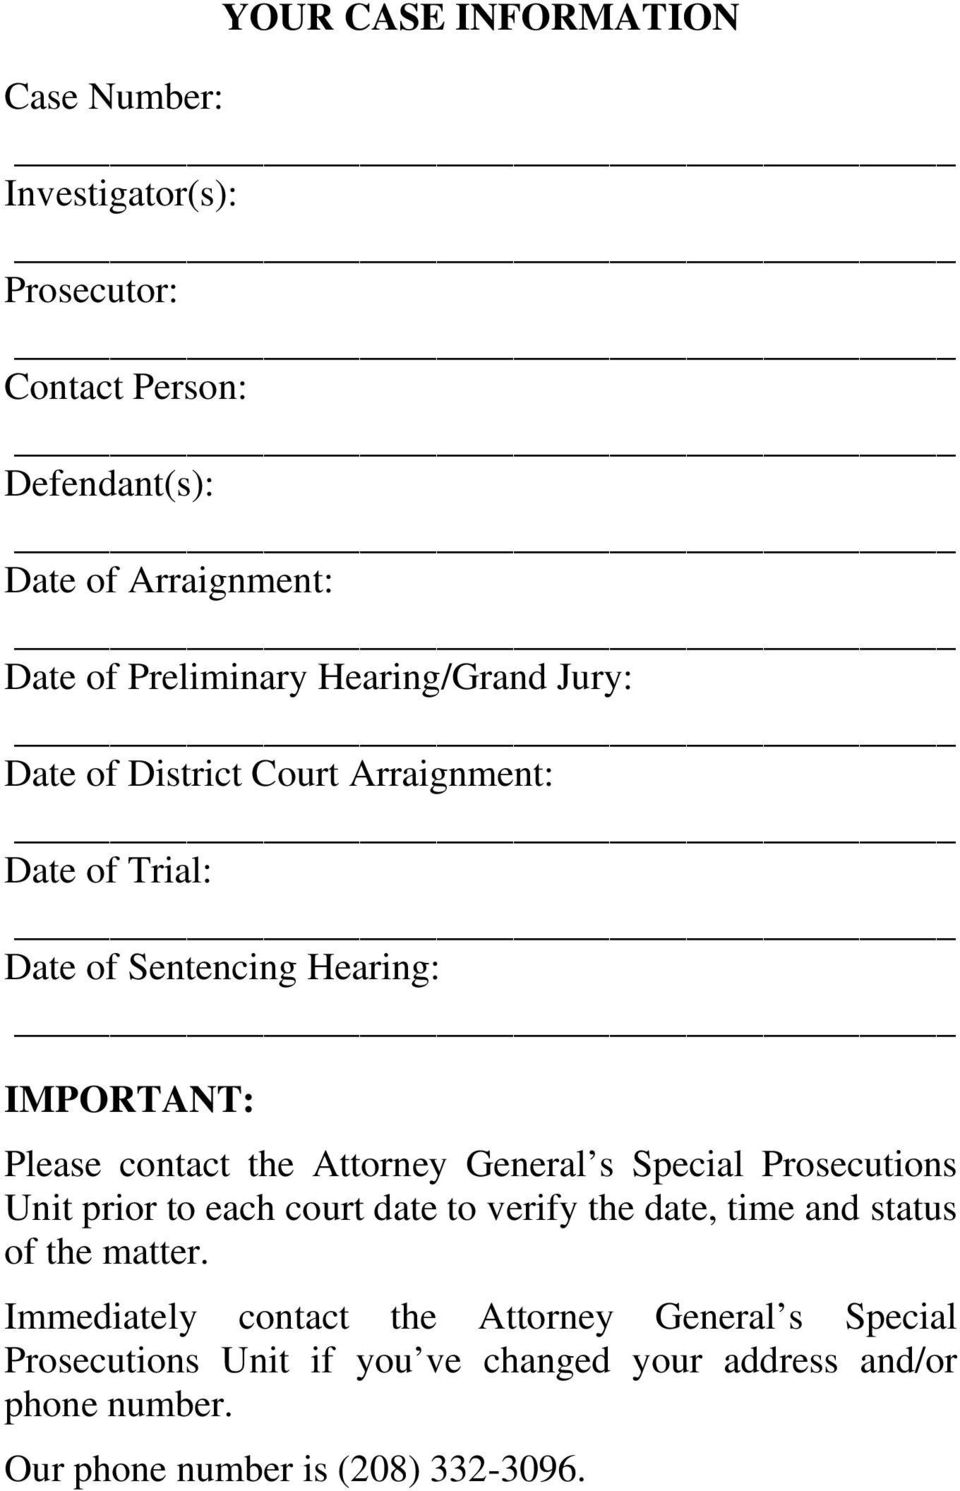 Attorney General s Special Prosecutions Unit prior to each court date to verify the date, time and status of the matter.